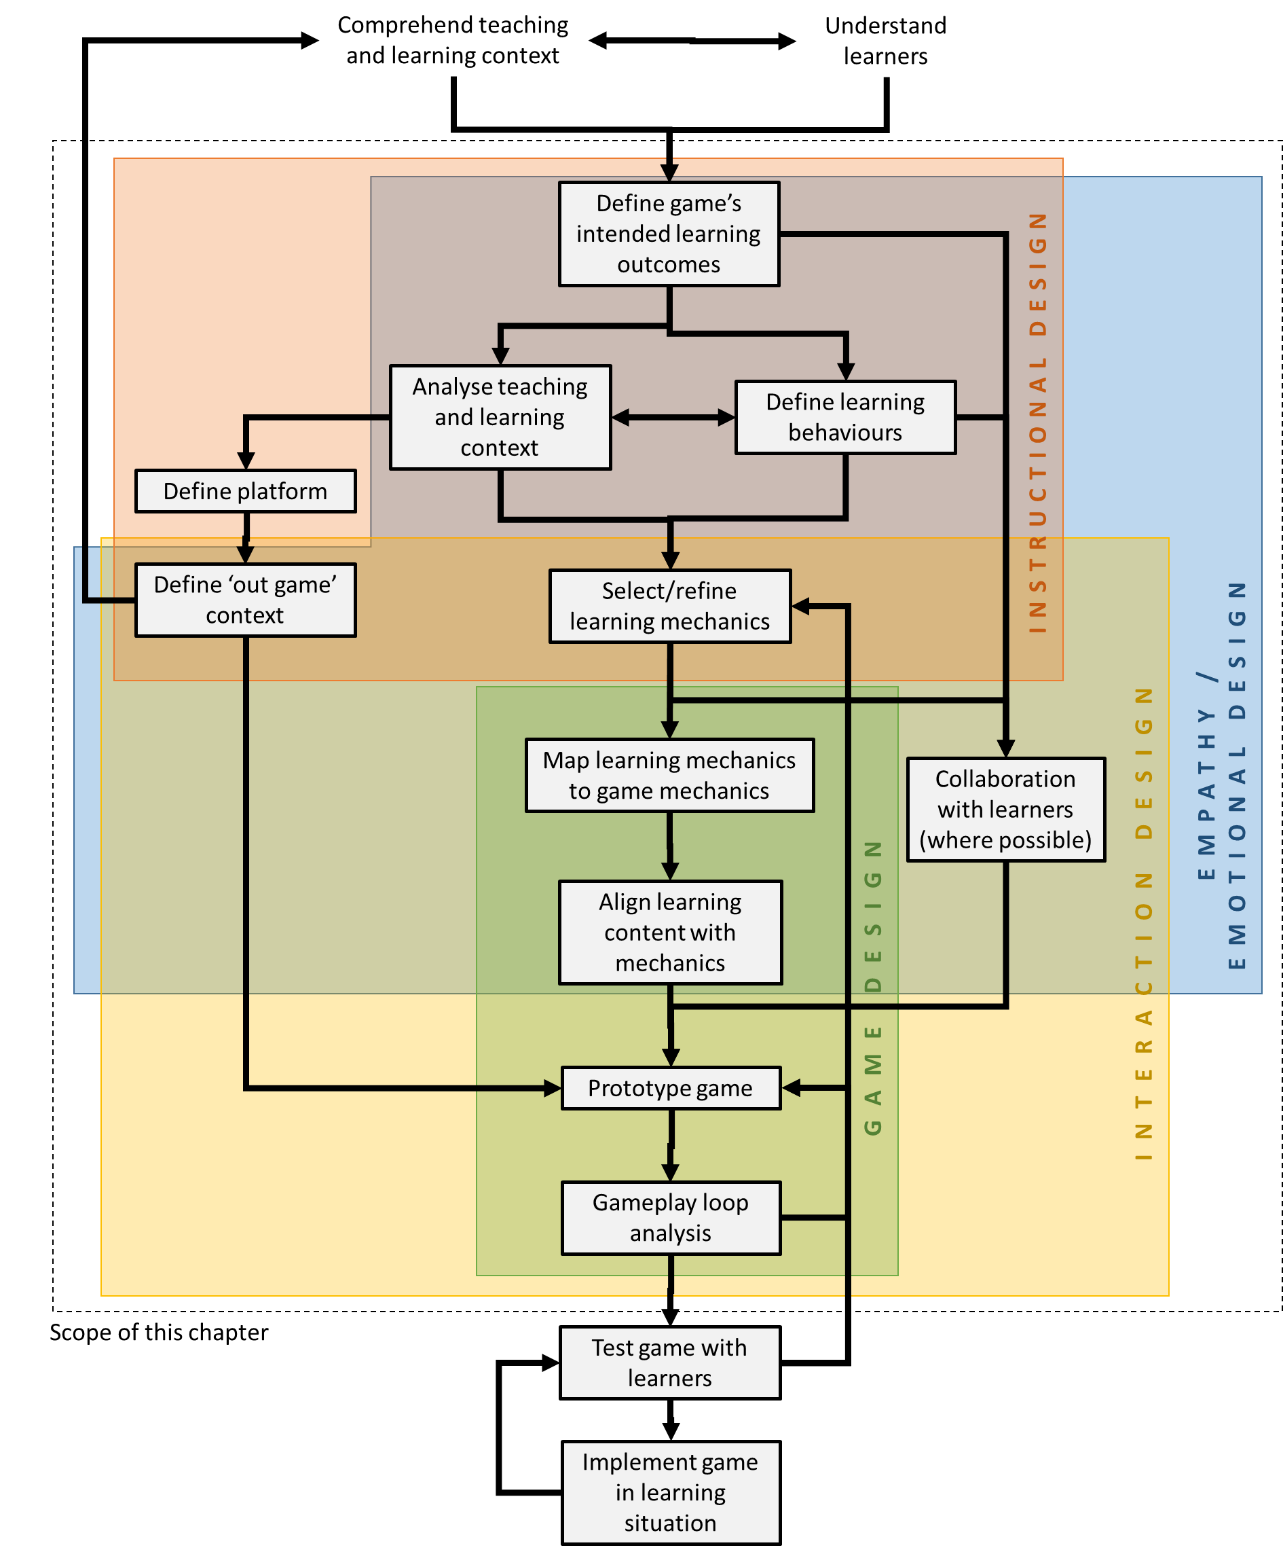 Workflow for Systematic Design of Game-Based Learning Interventions